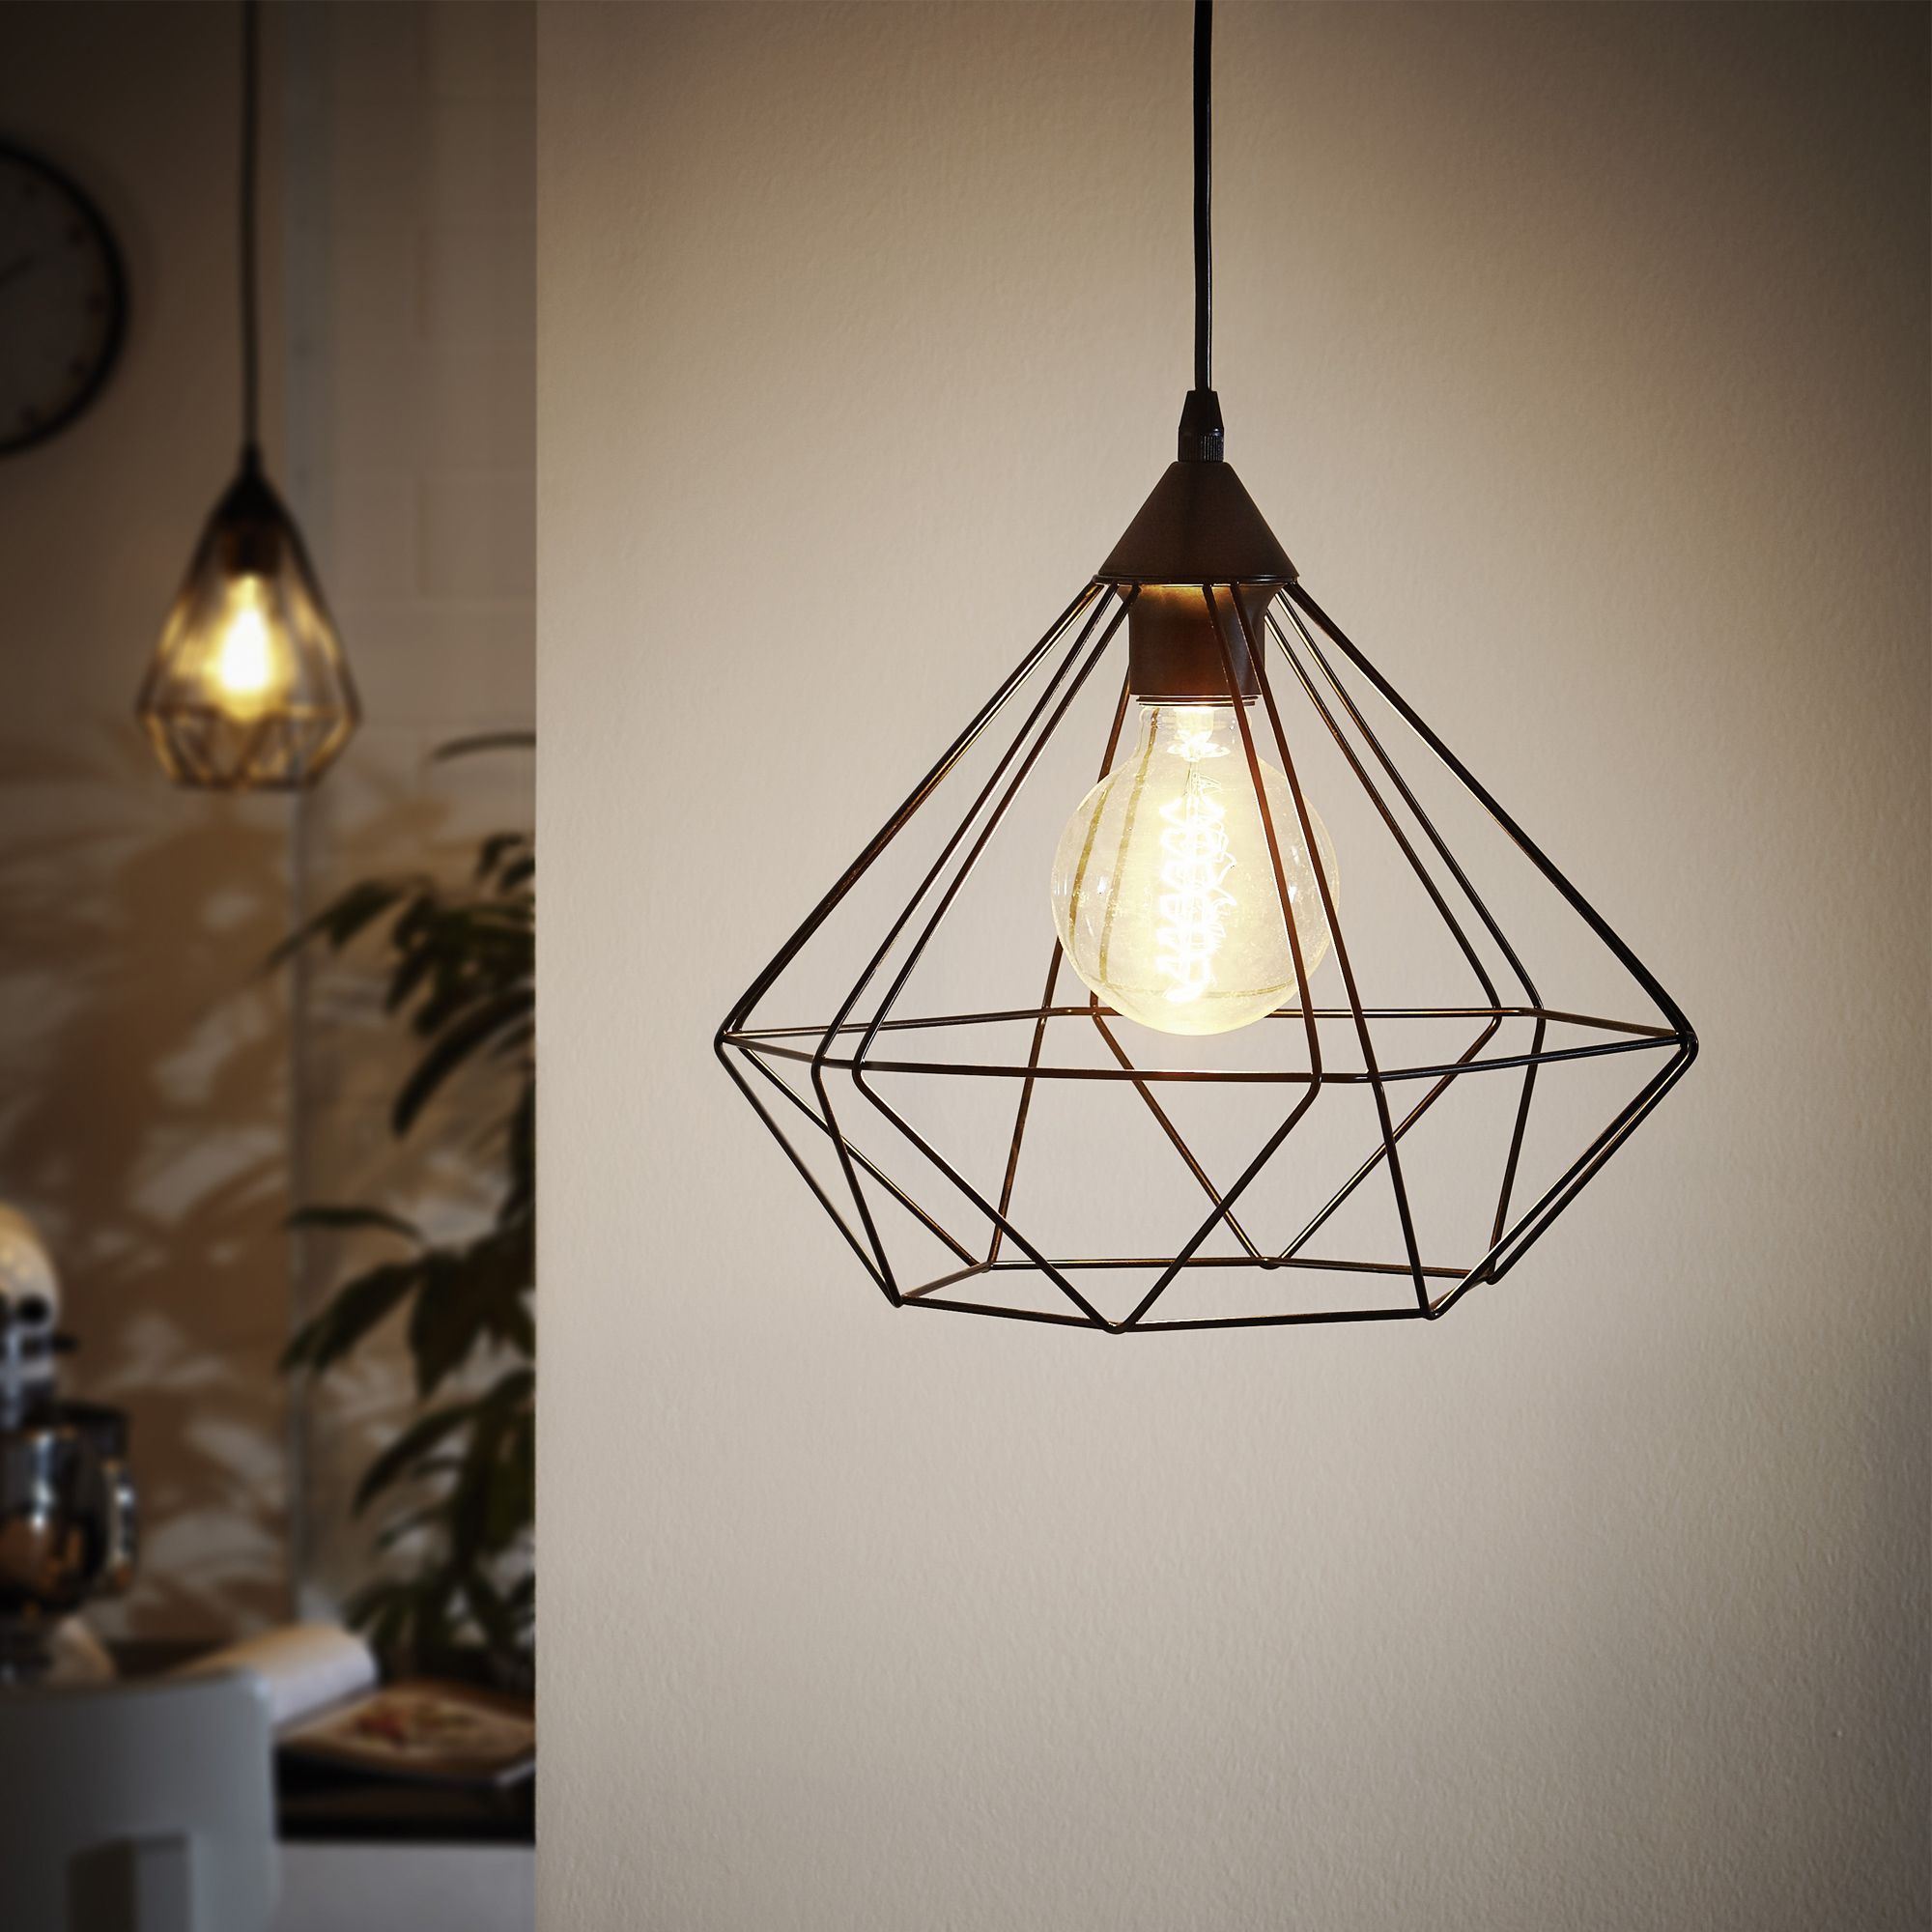 Tarbes salons and lights - Suspension industrielle noire ...